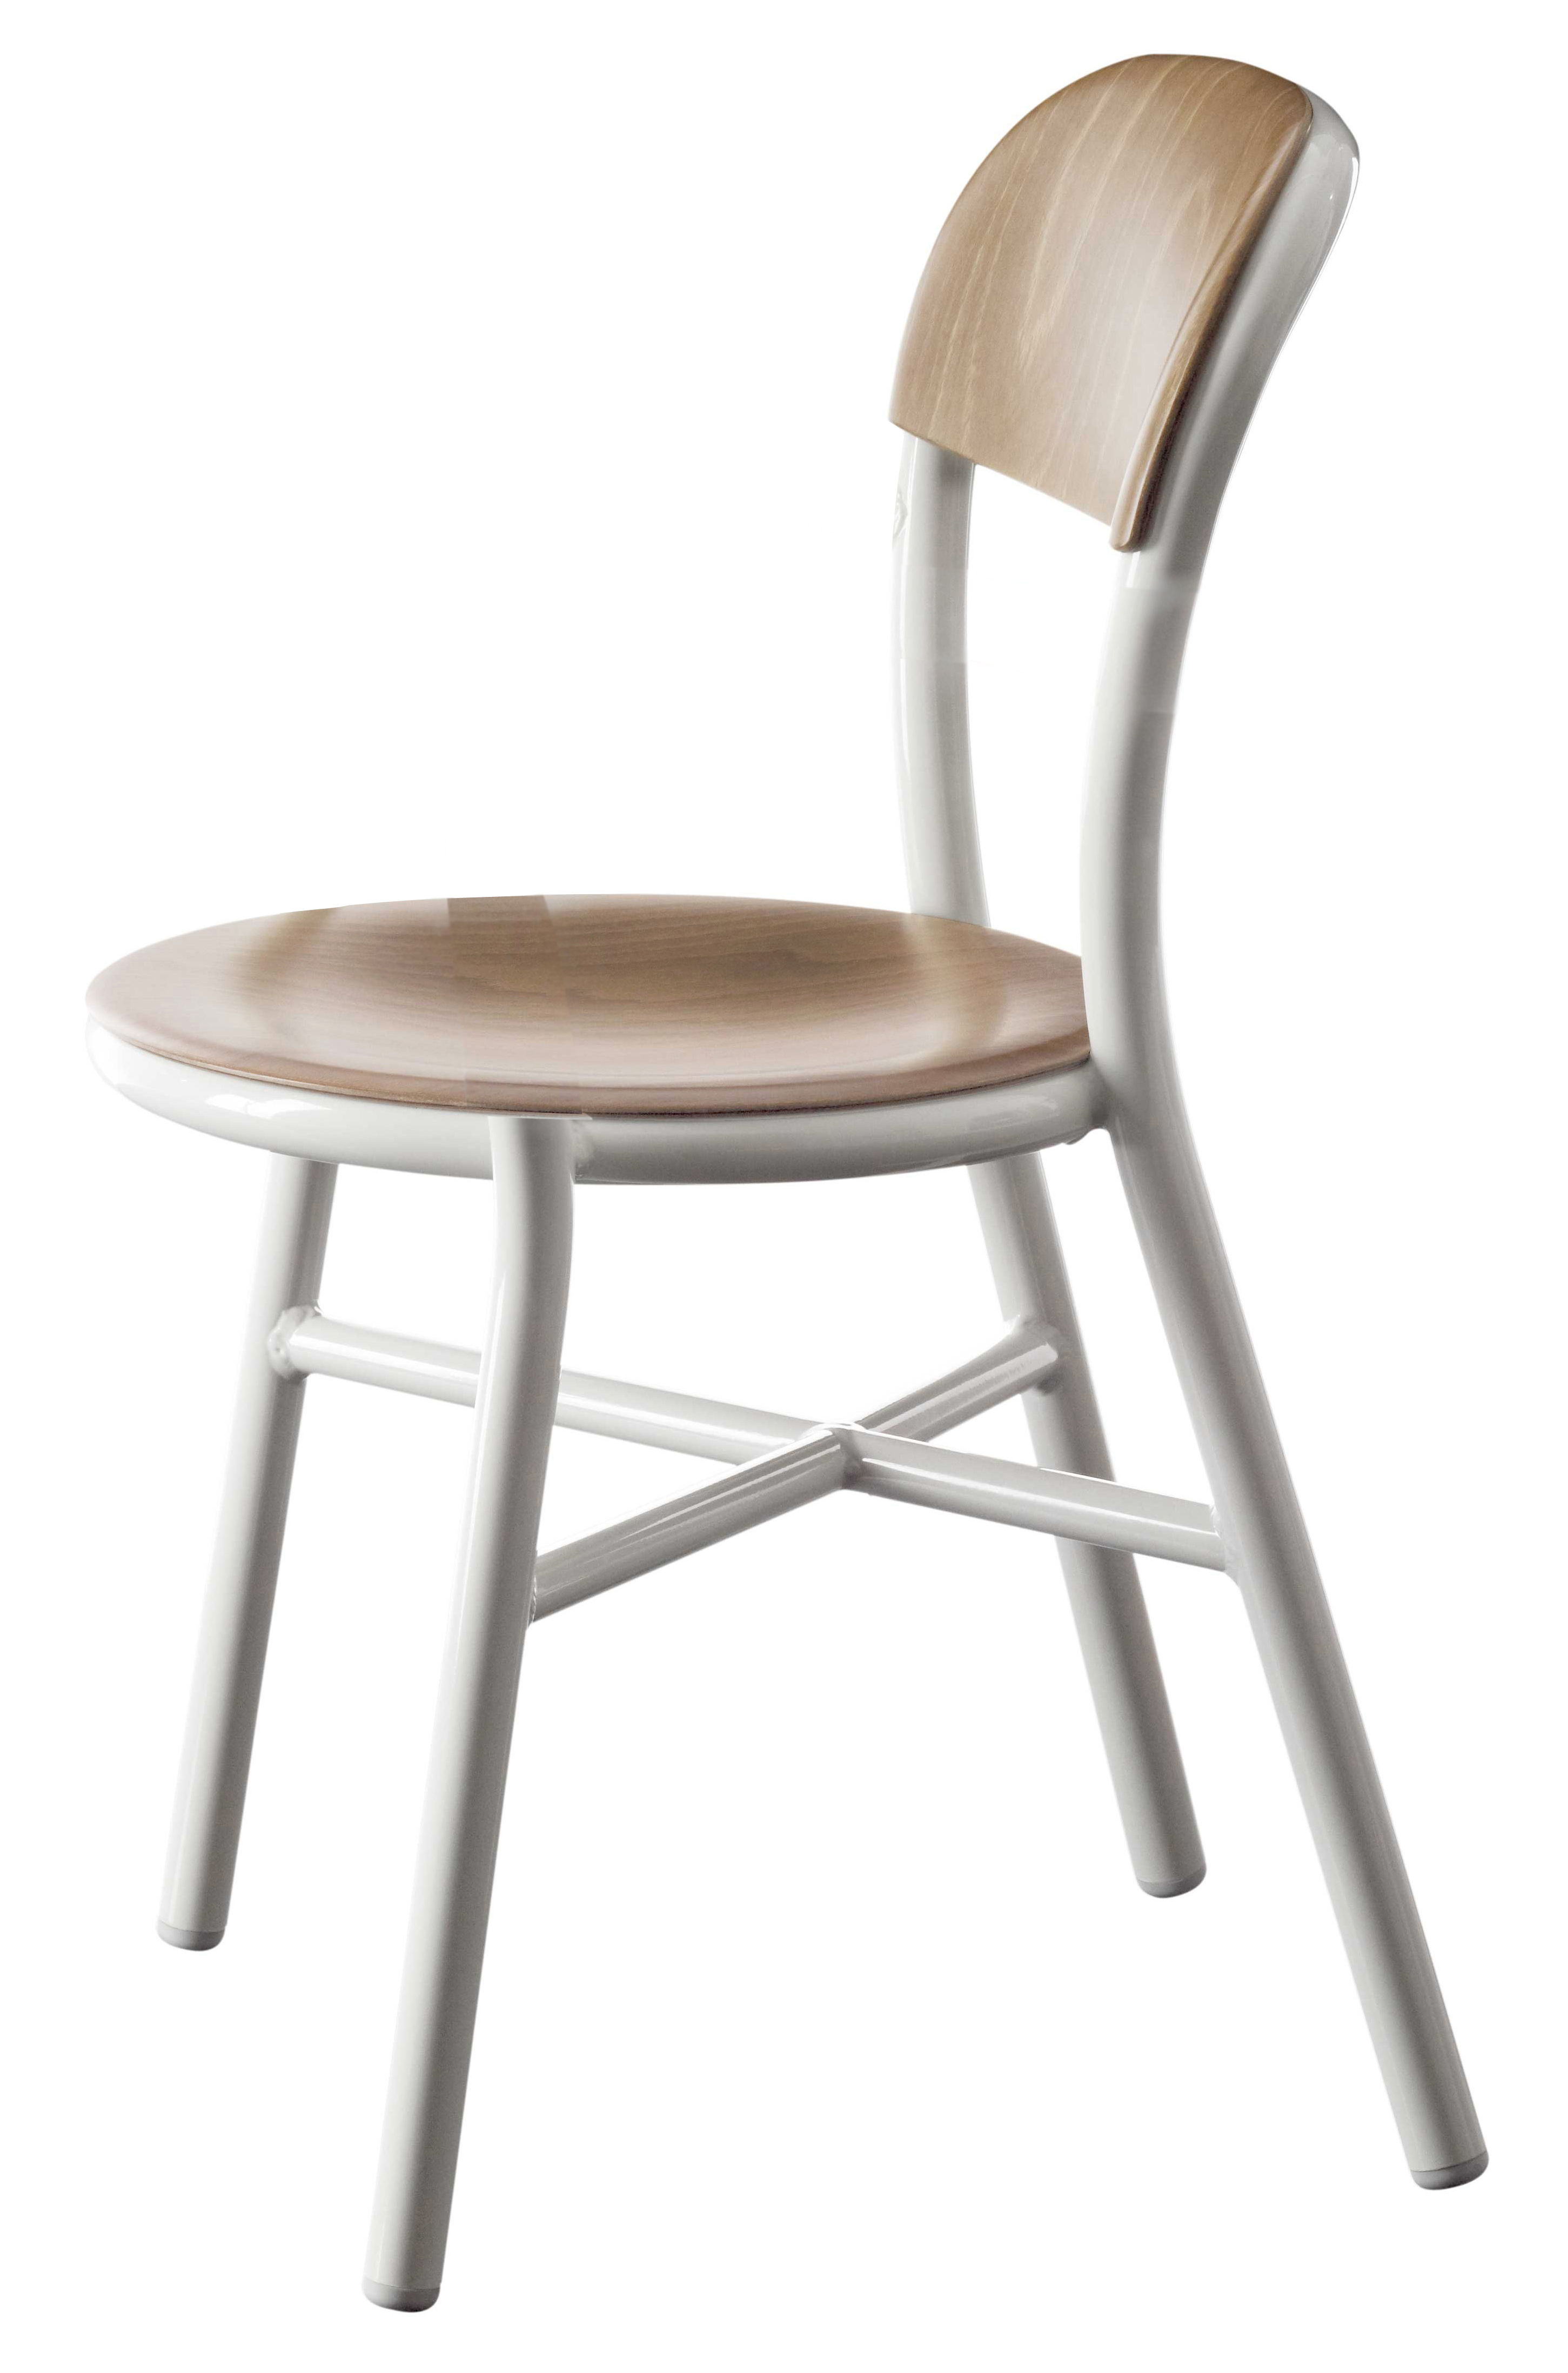 Pipe stackable chair wood metal white natural beech for Magis chair